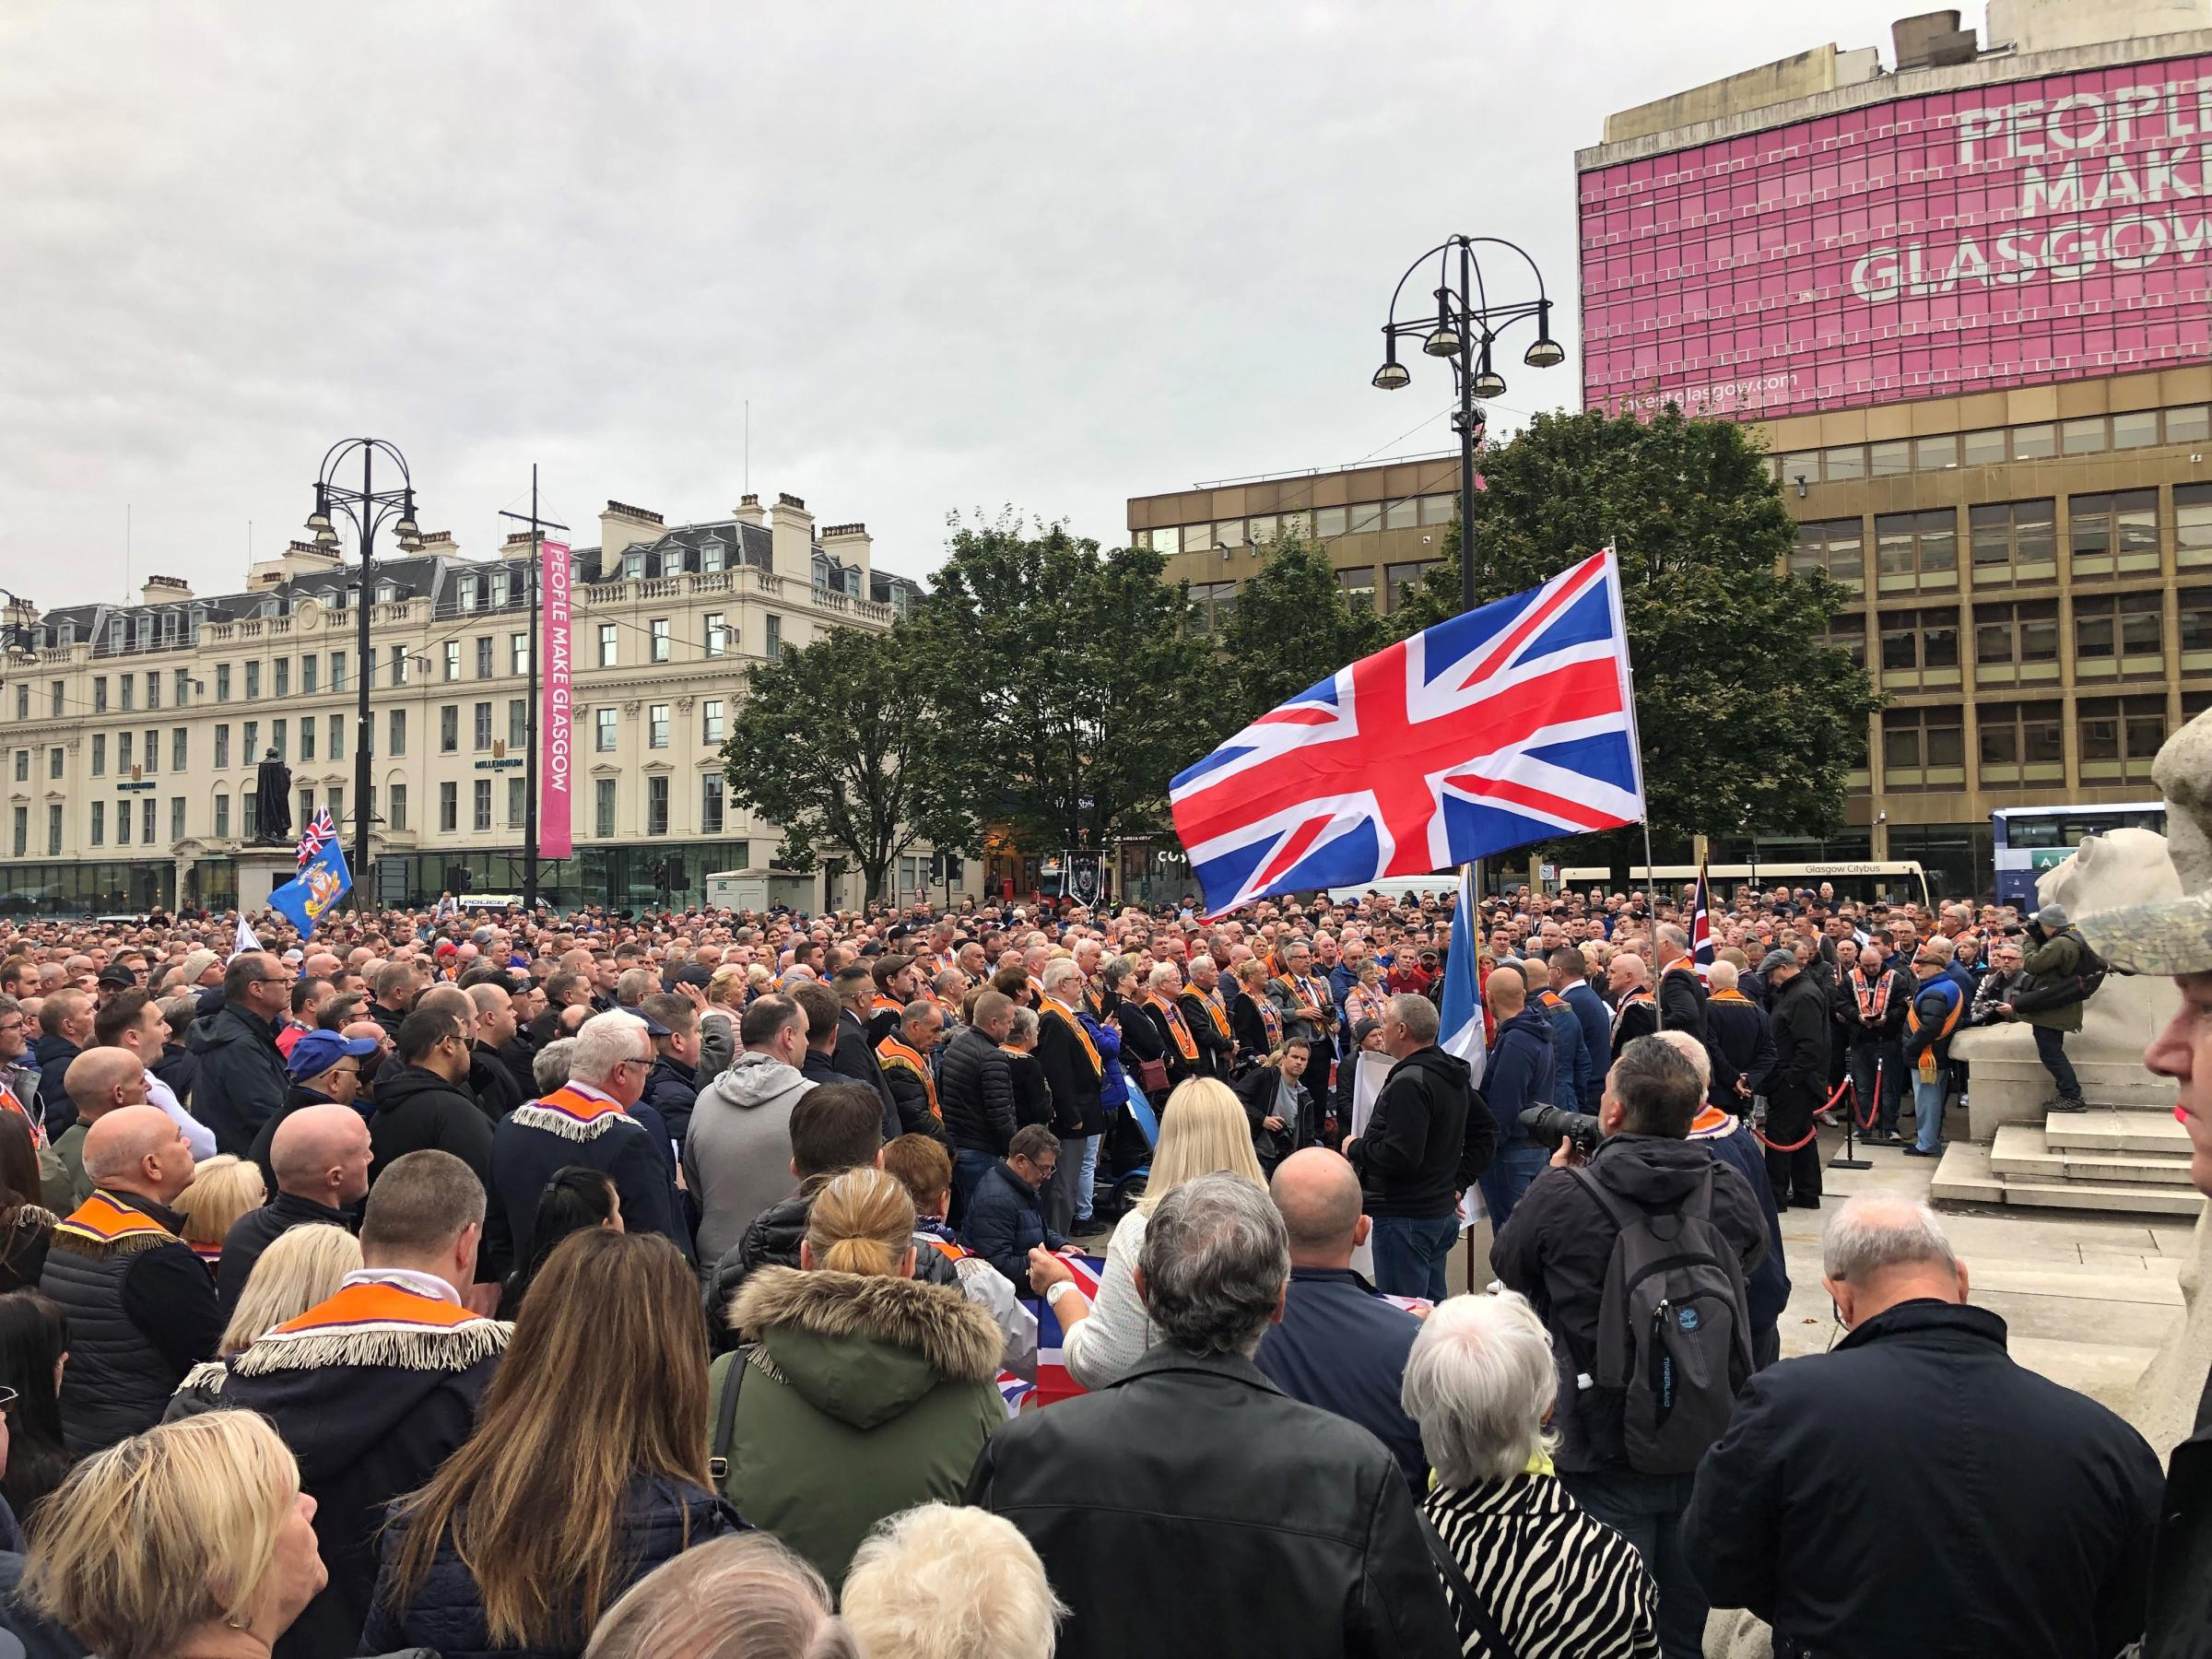 Protestant group speaks out after George Square demonstration